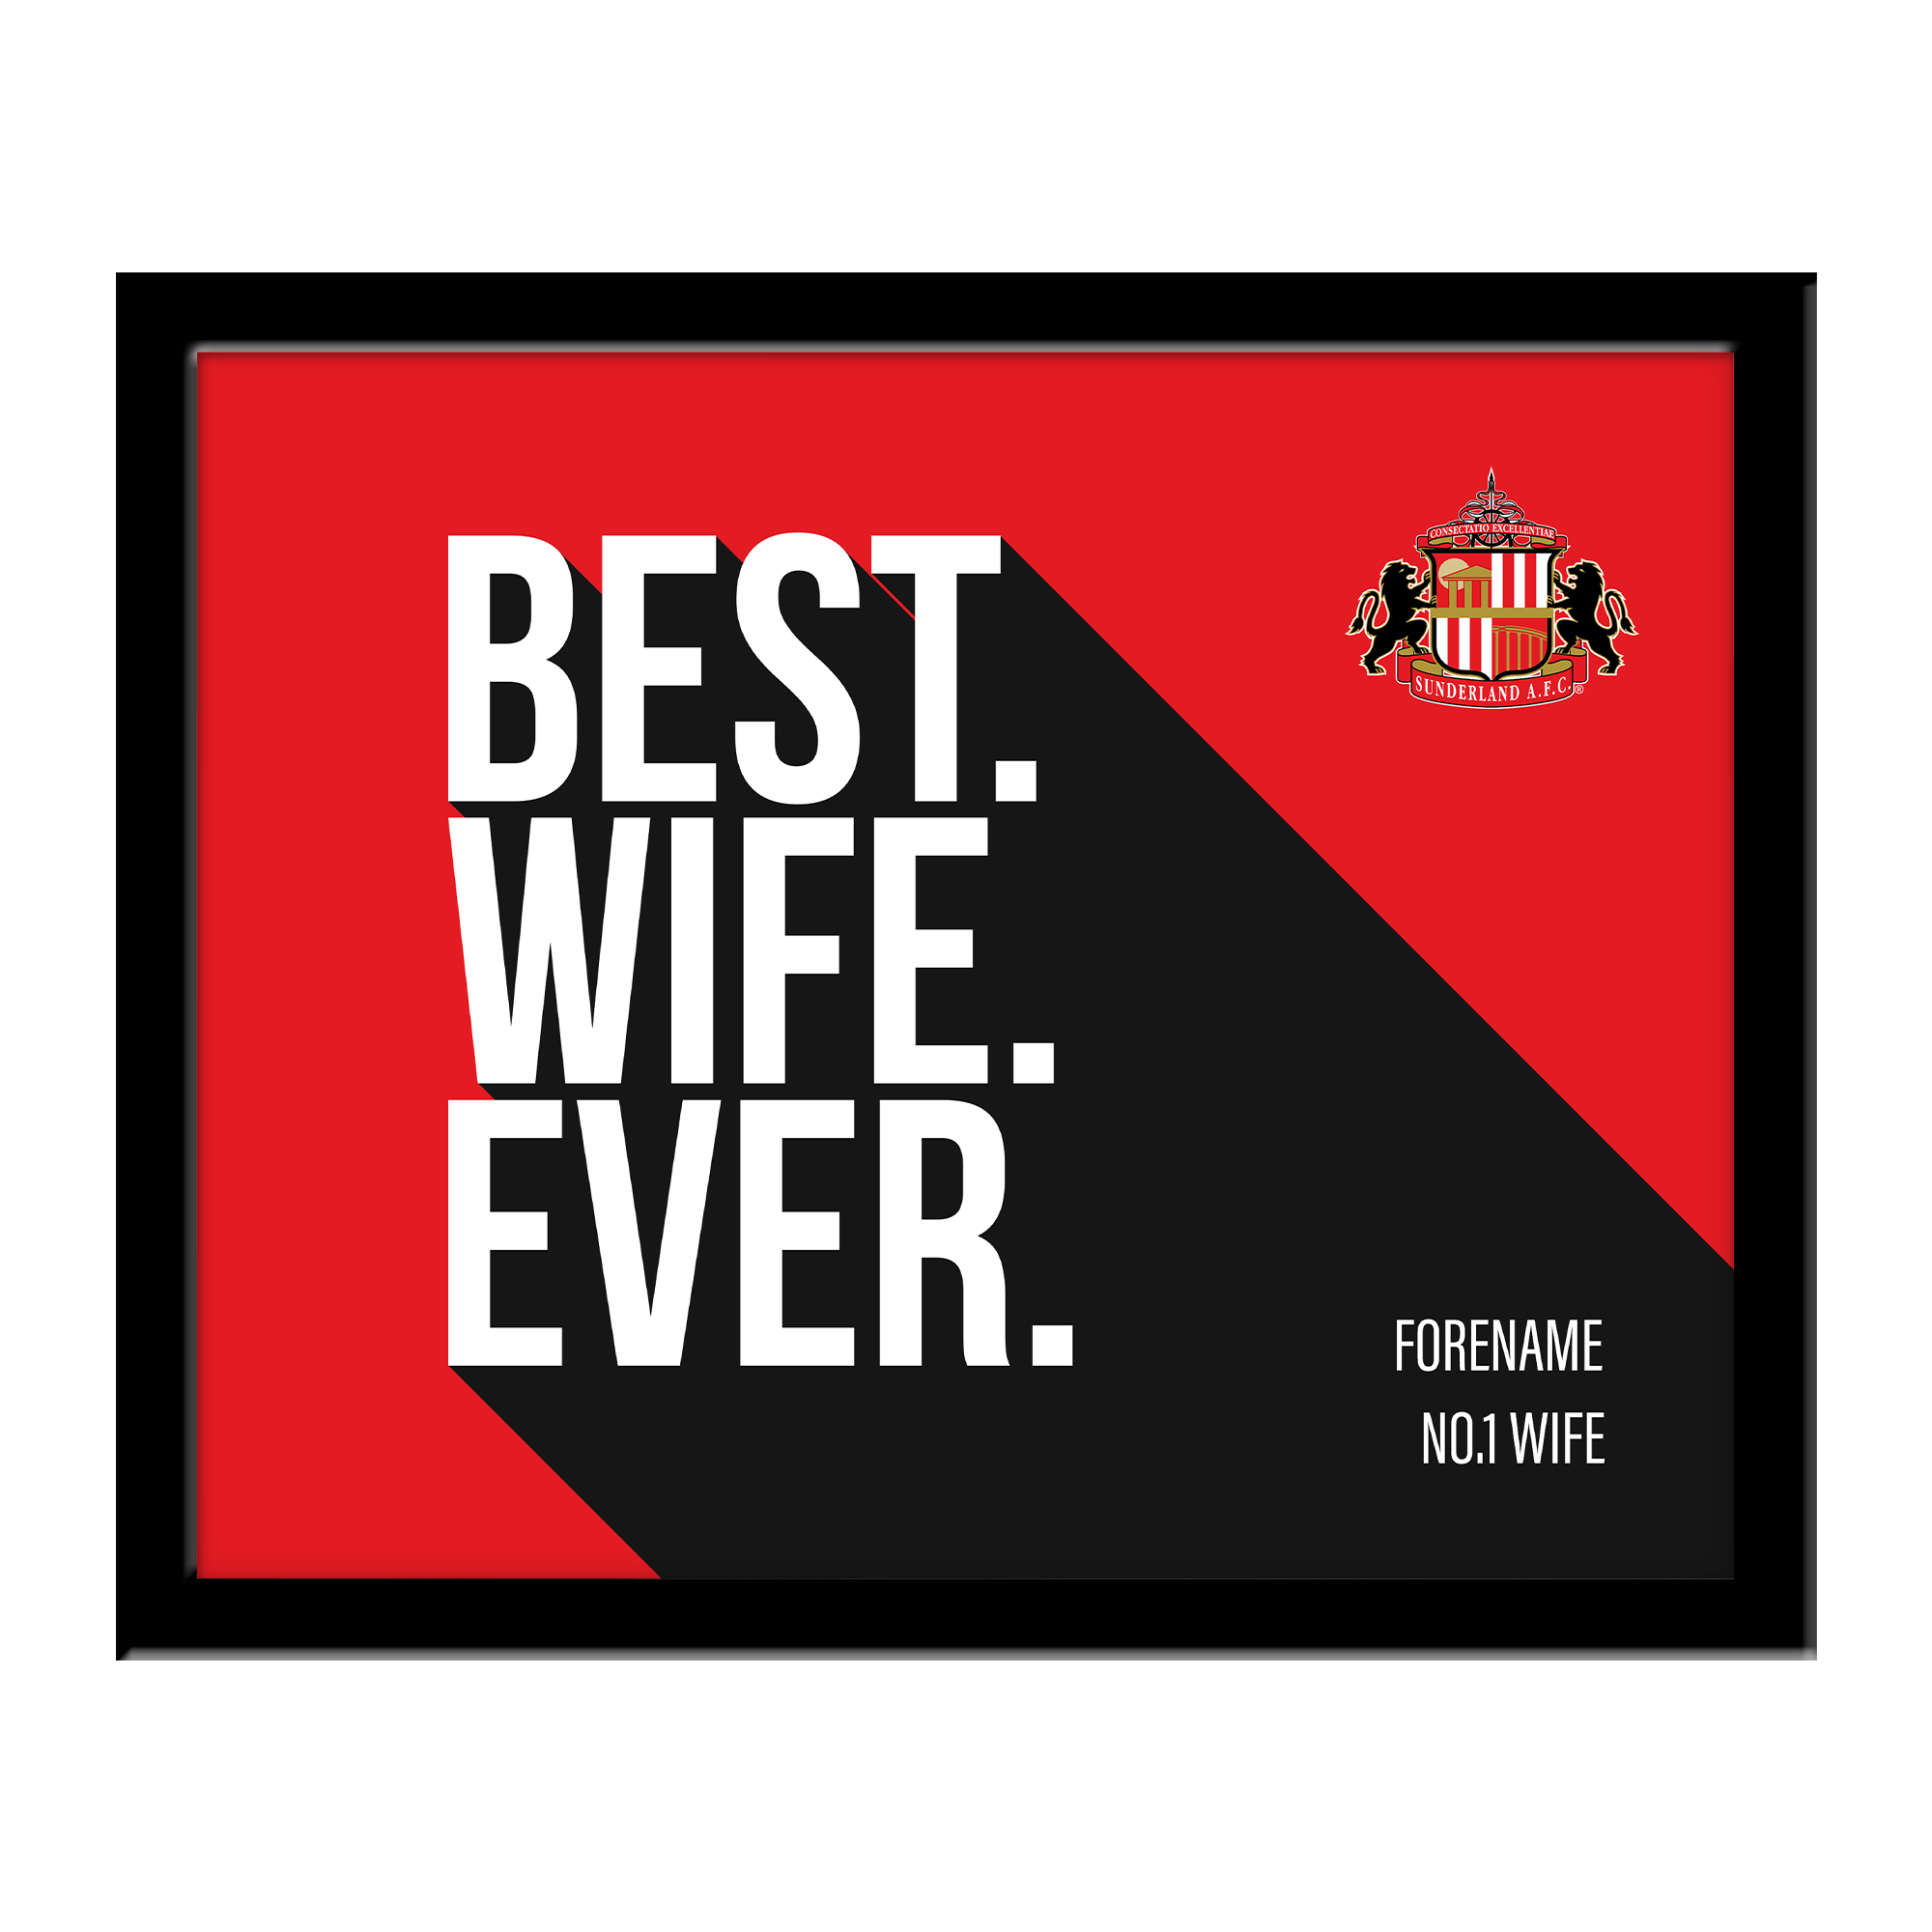 Sunderland Best Wife Ever 10 x 8 Photo Framed